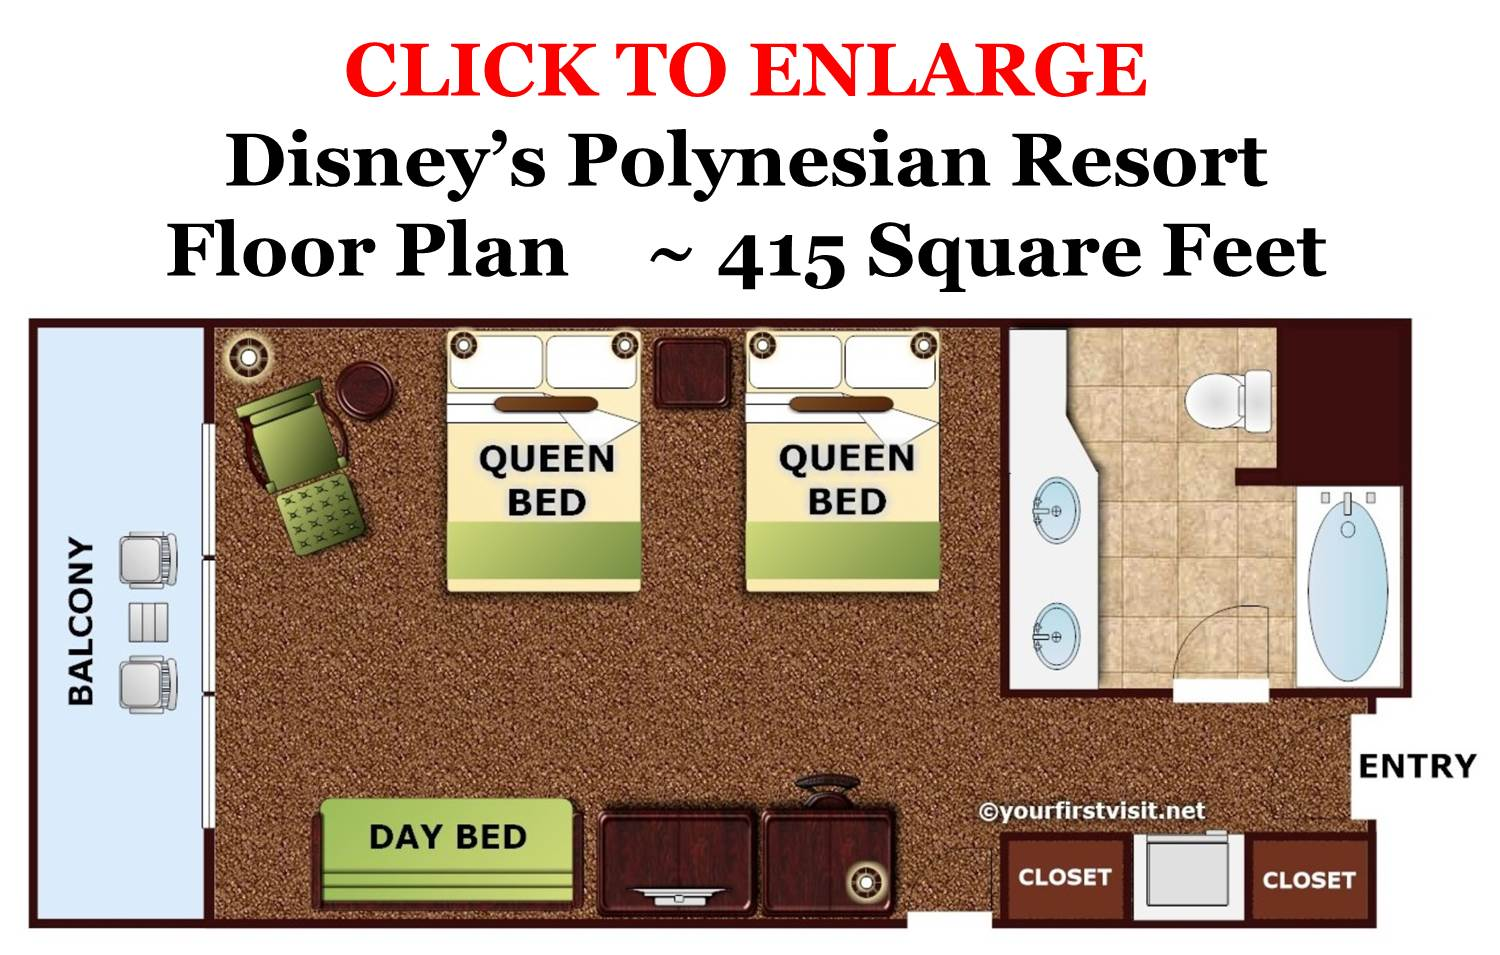 Floor Plan Disneys Polynesian Resort from yourfirstvisit.net